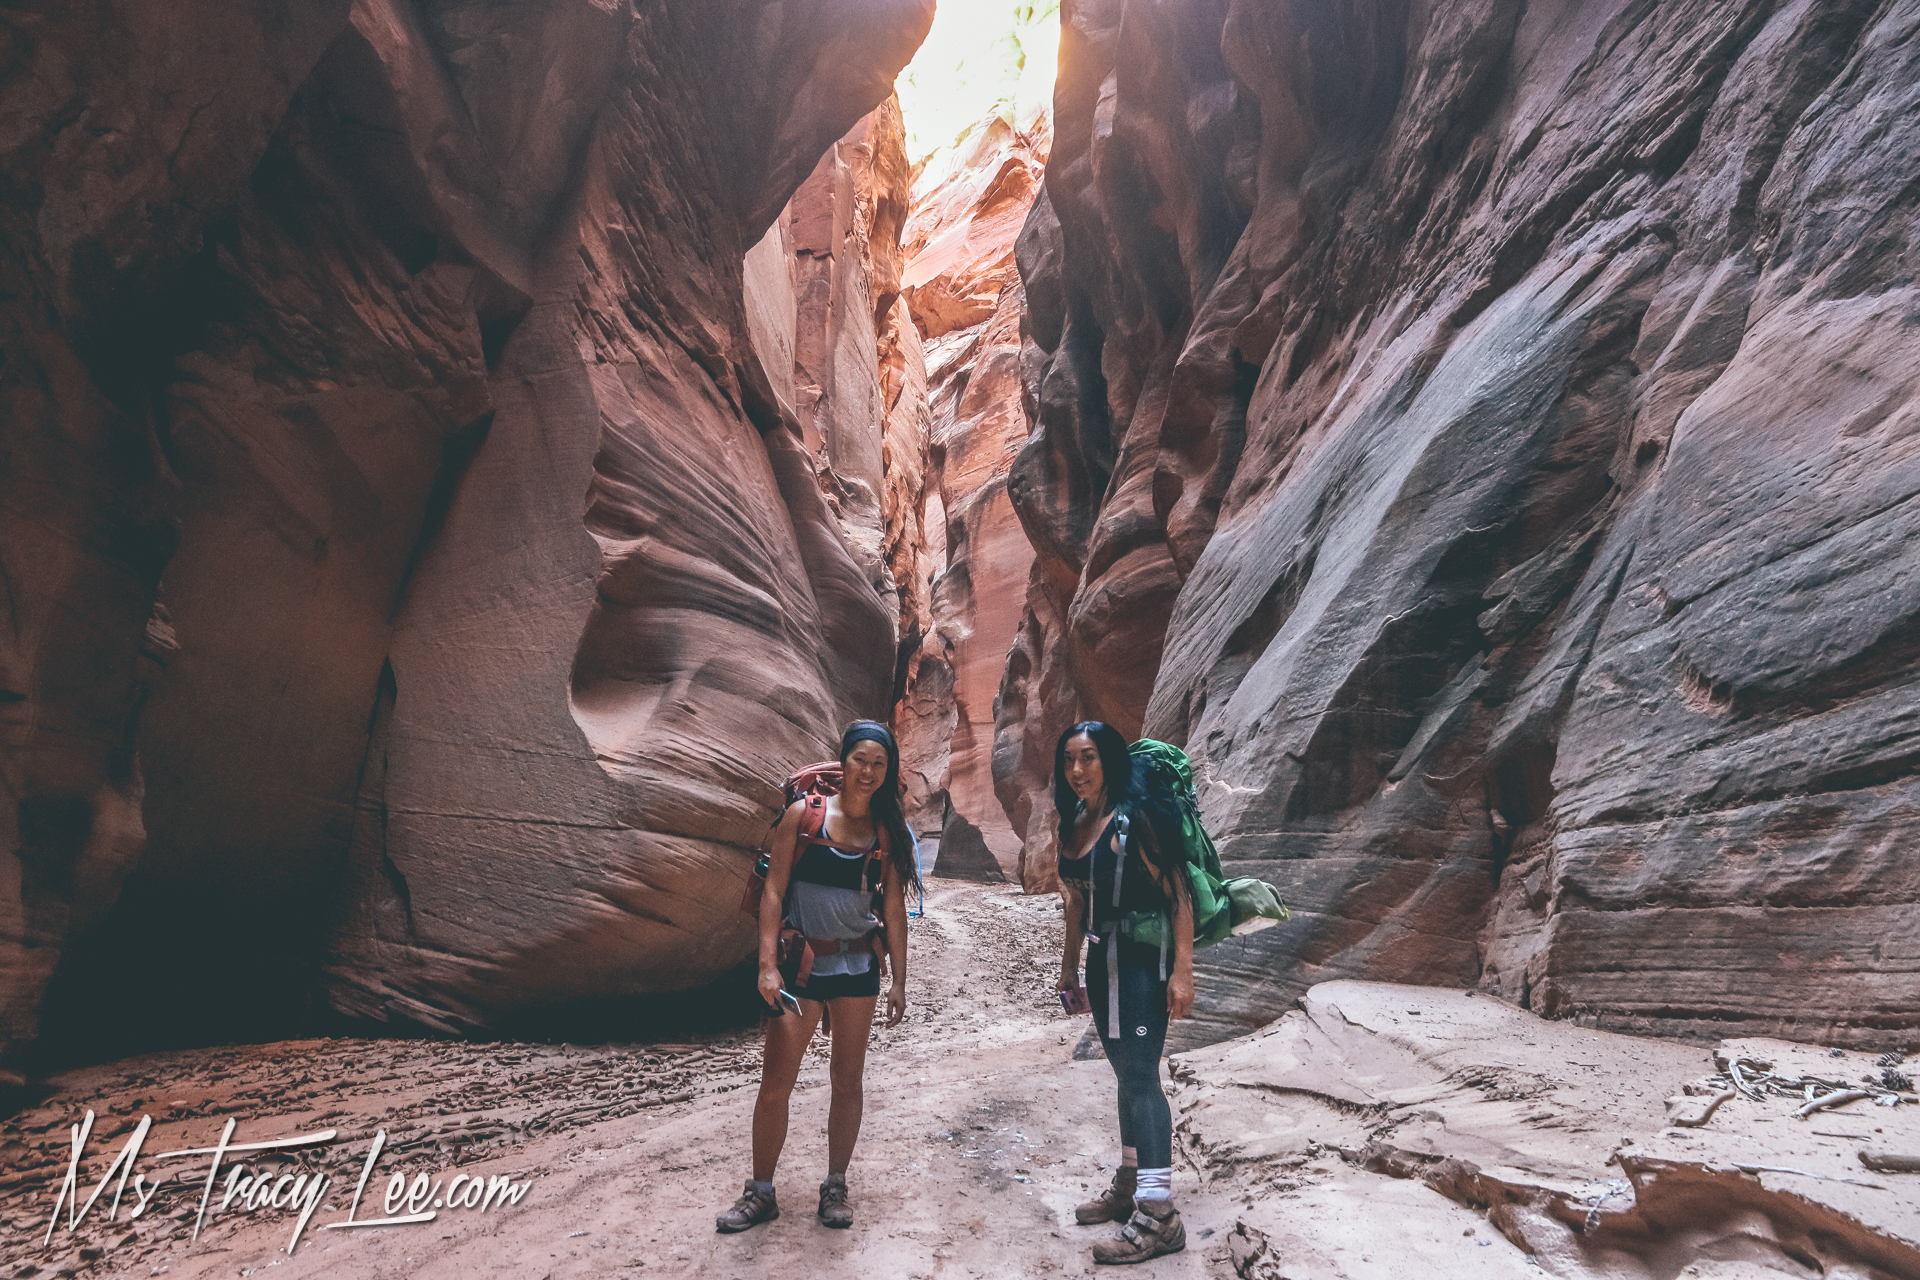 Crossing Buckskin Gulch off my Bucket List